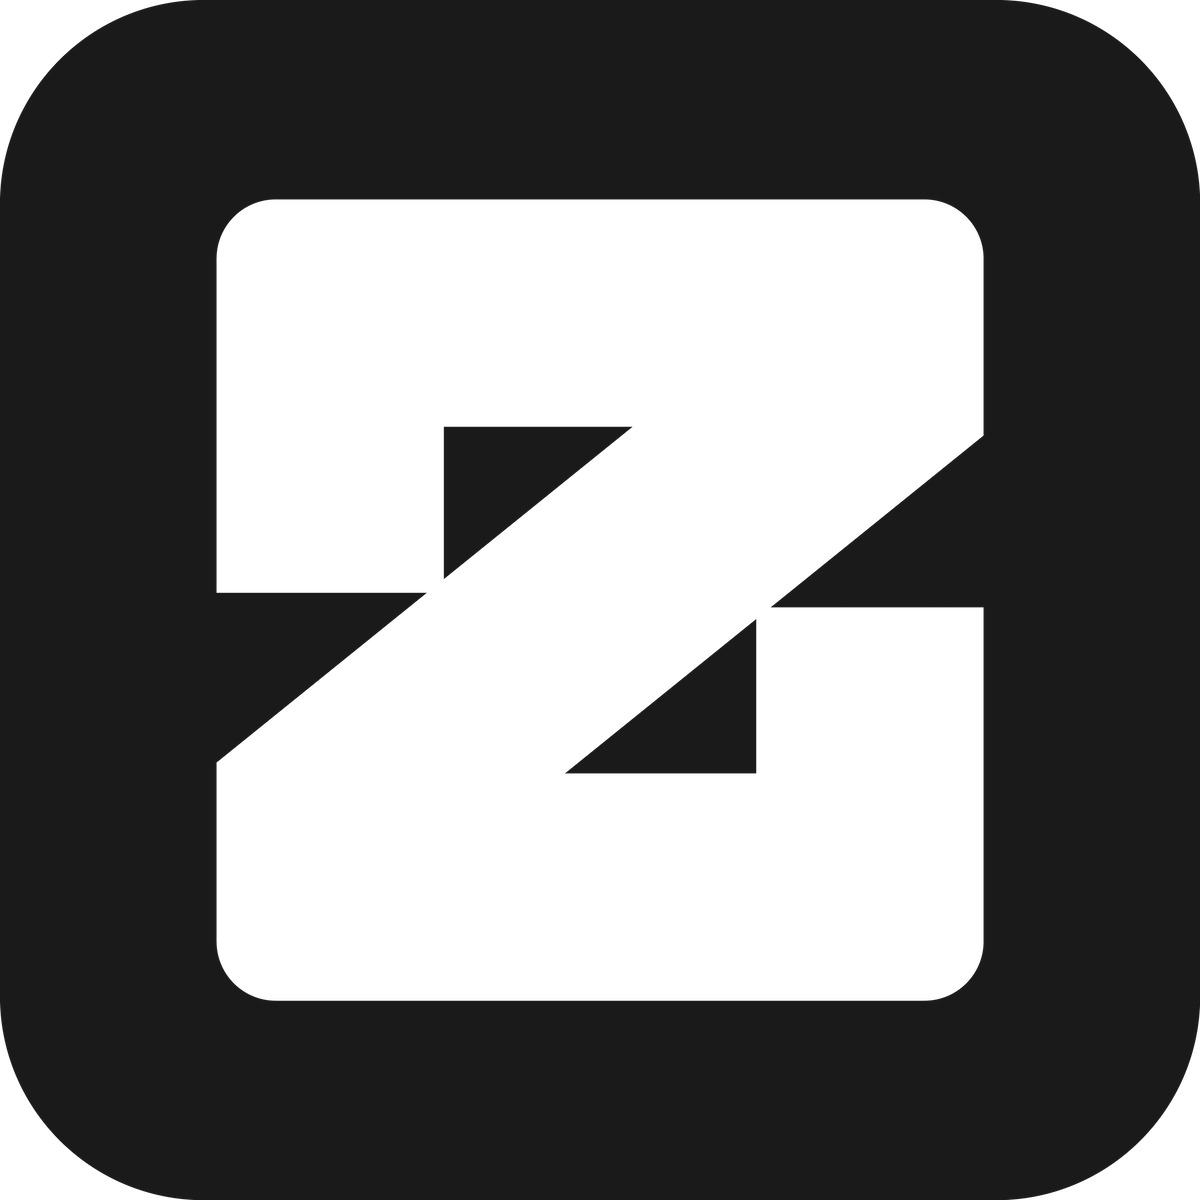 Hire Shopify Experts to integrate Zoko Sales app into a Shopify store